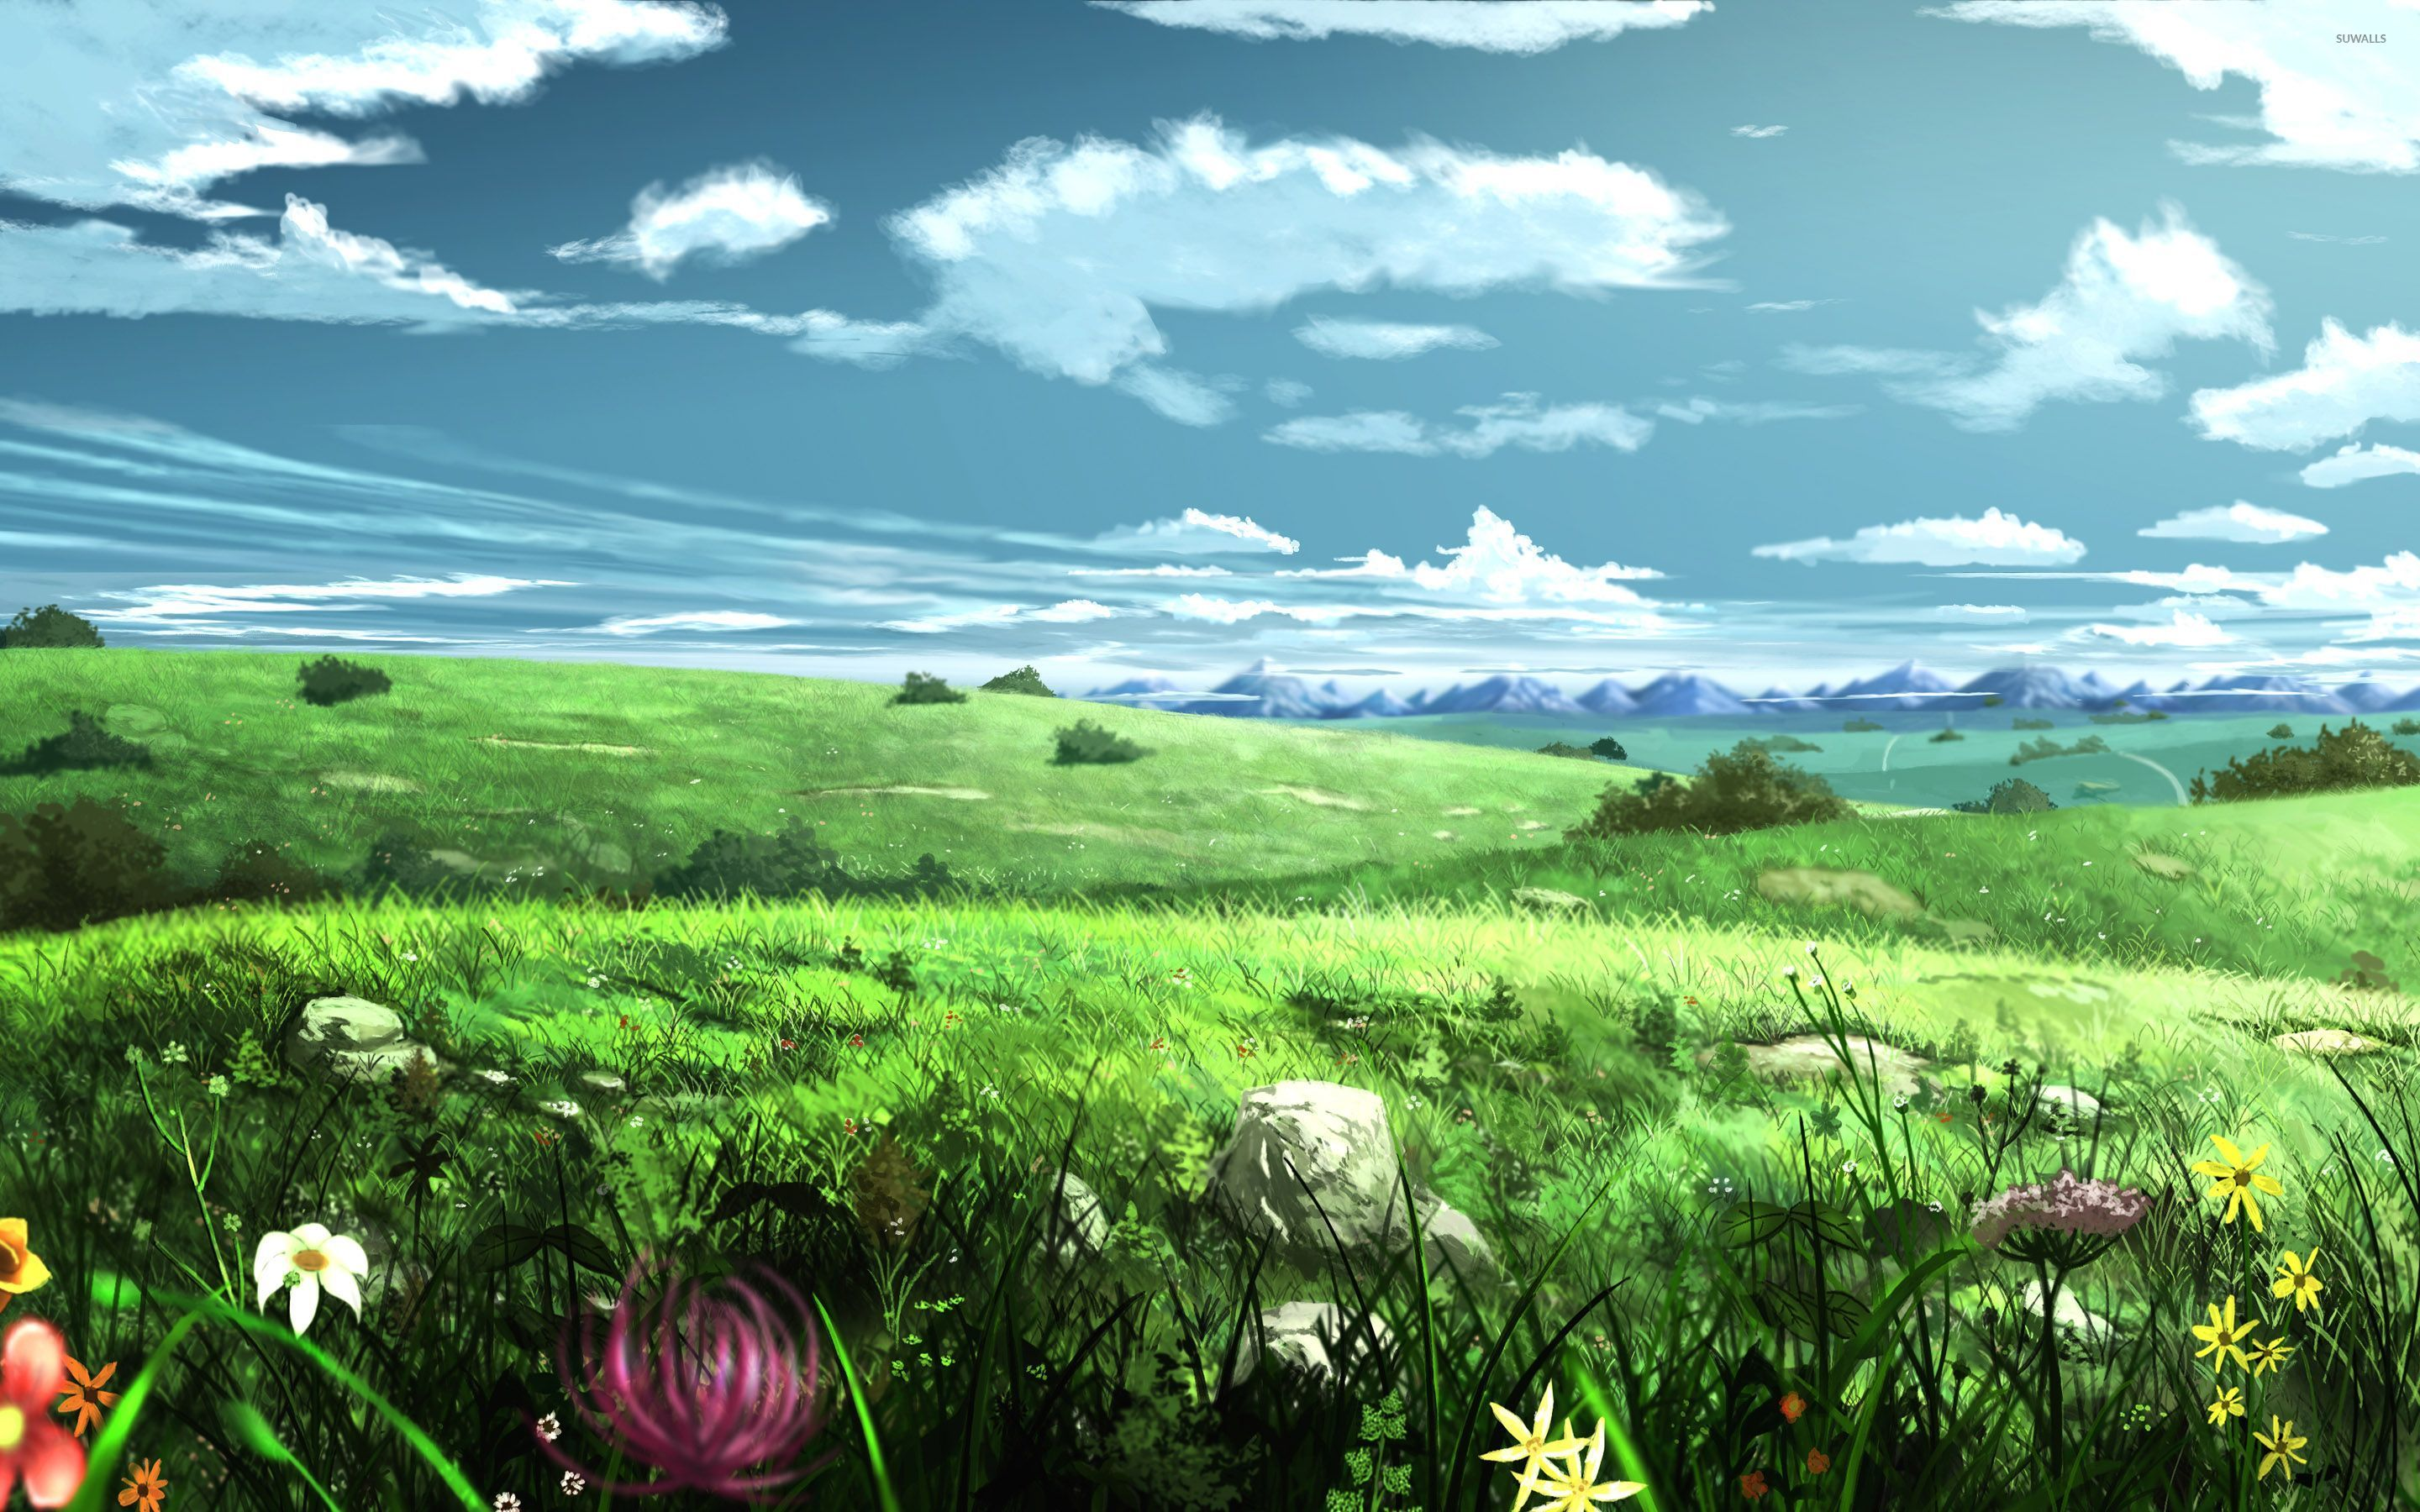 over the hills wallpaper - anime wallpapers - #30760